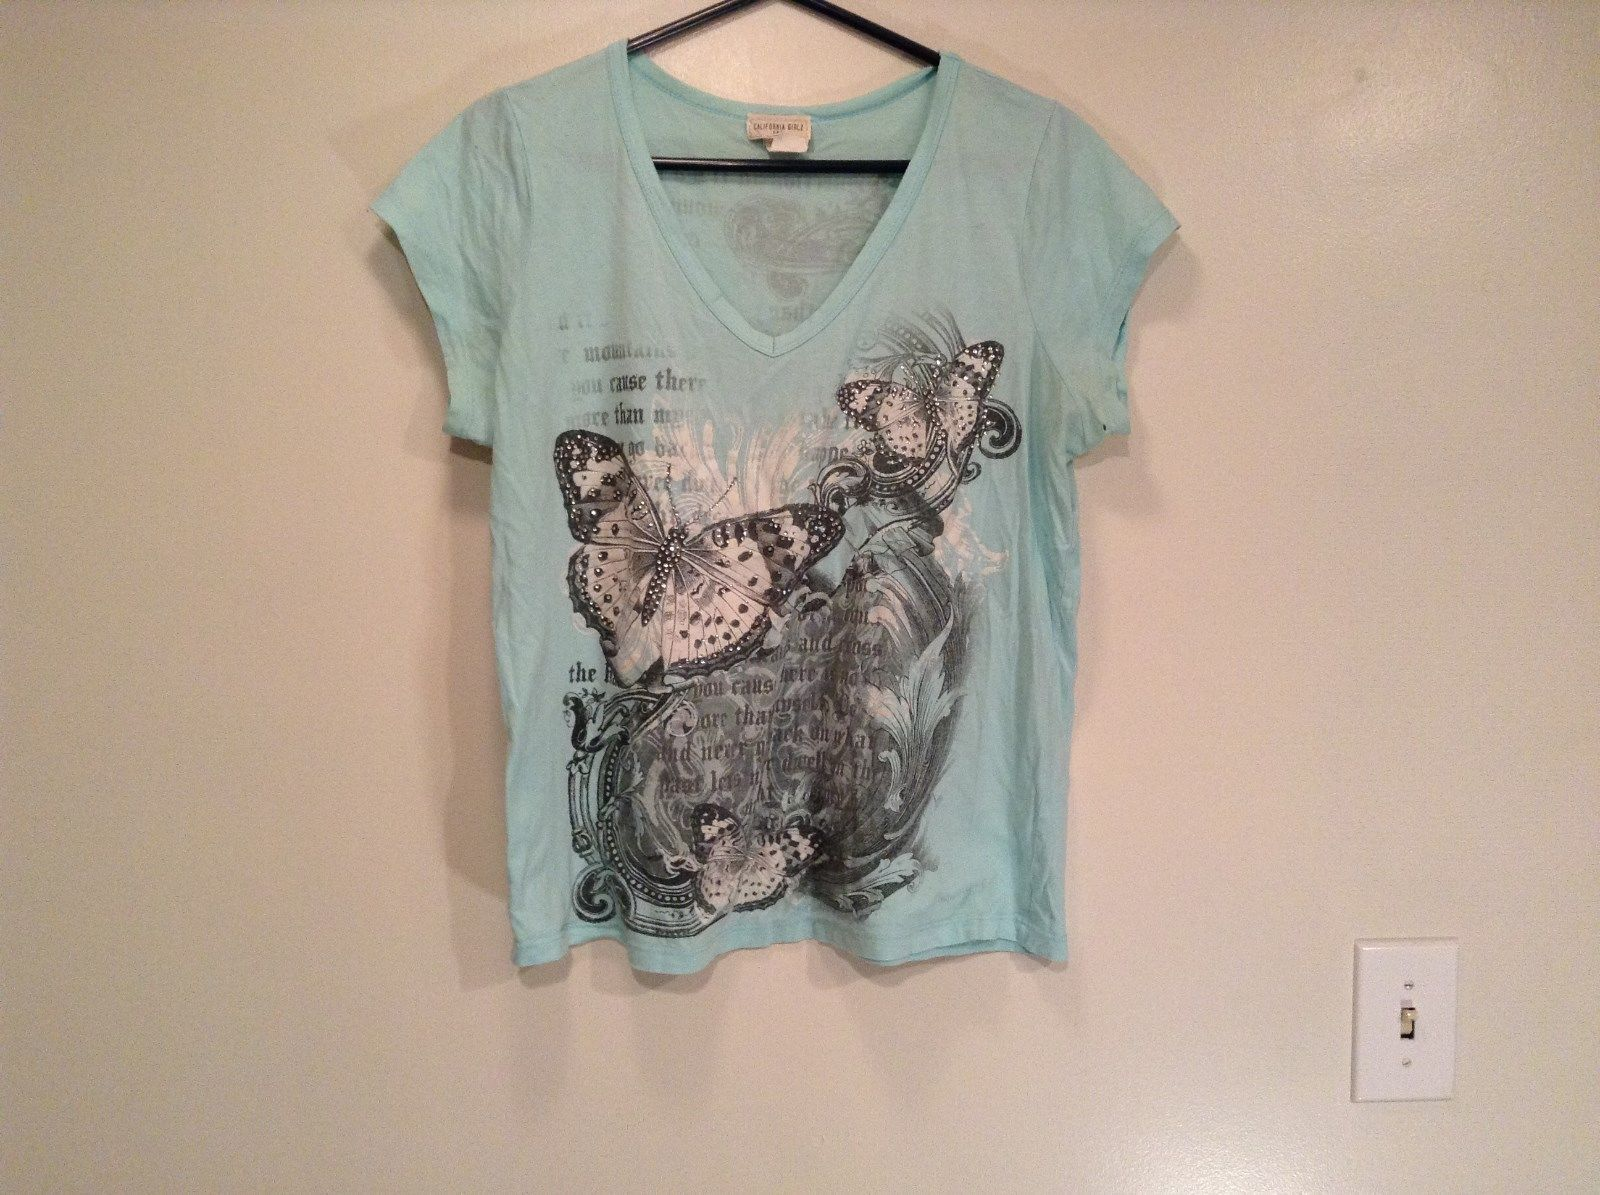 California Girls Short Sleeve Light Blue Shirt Butterflies and Crystals Size XL